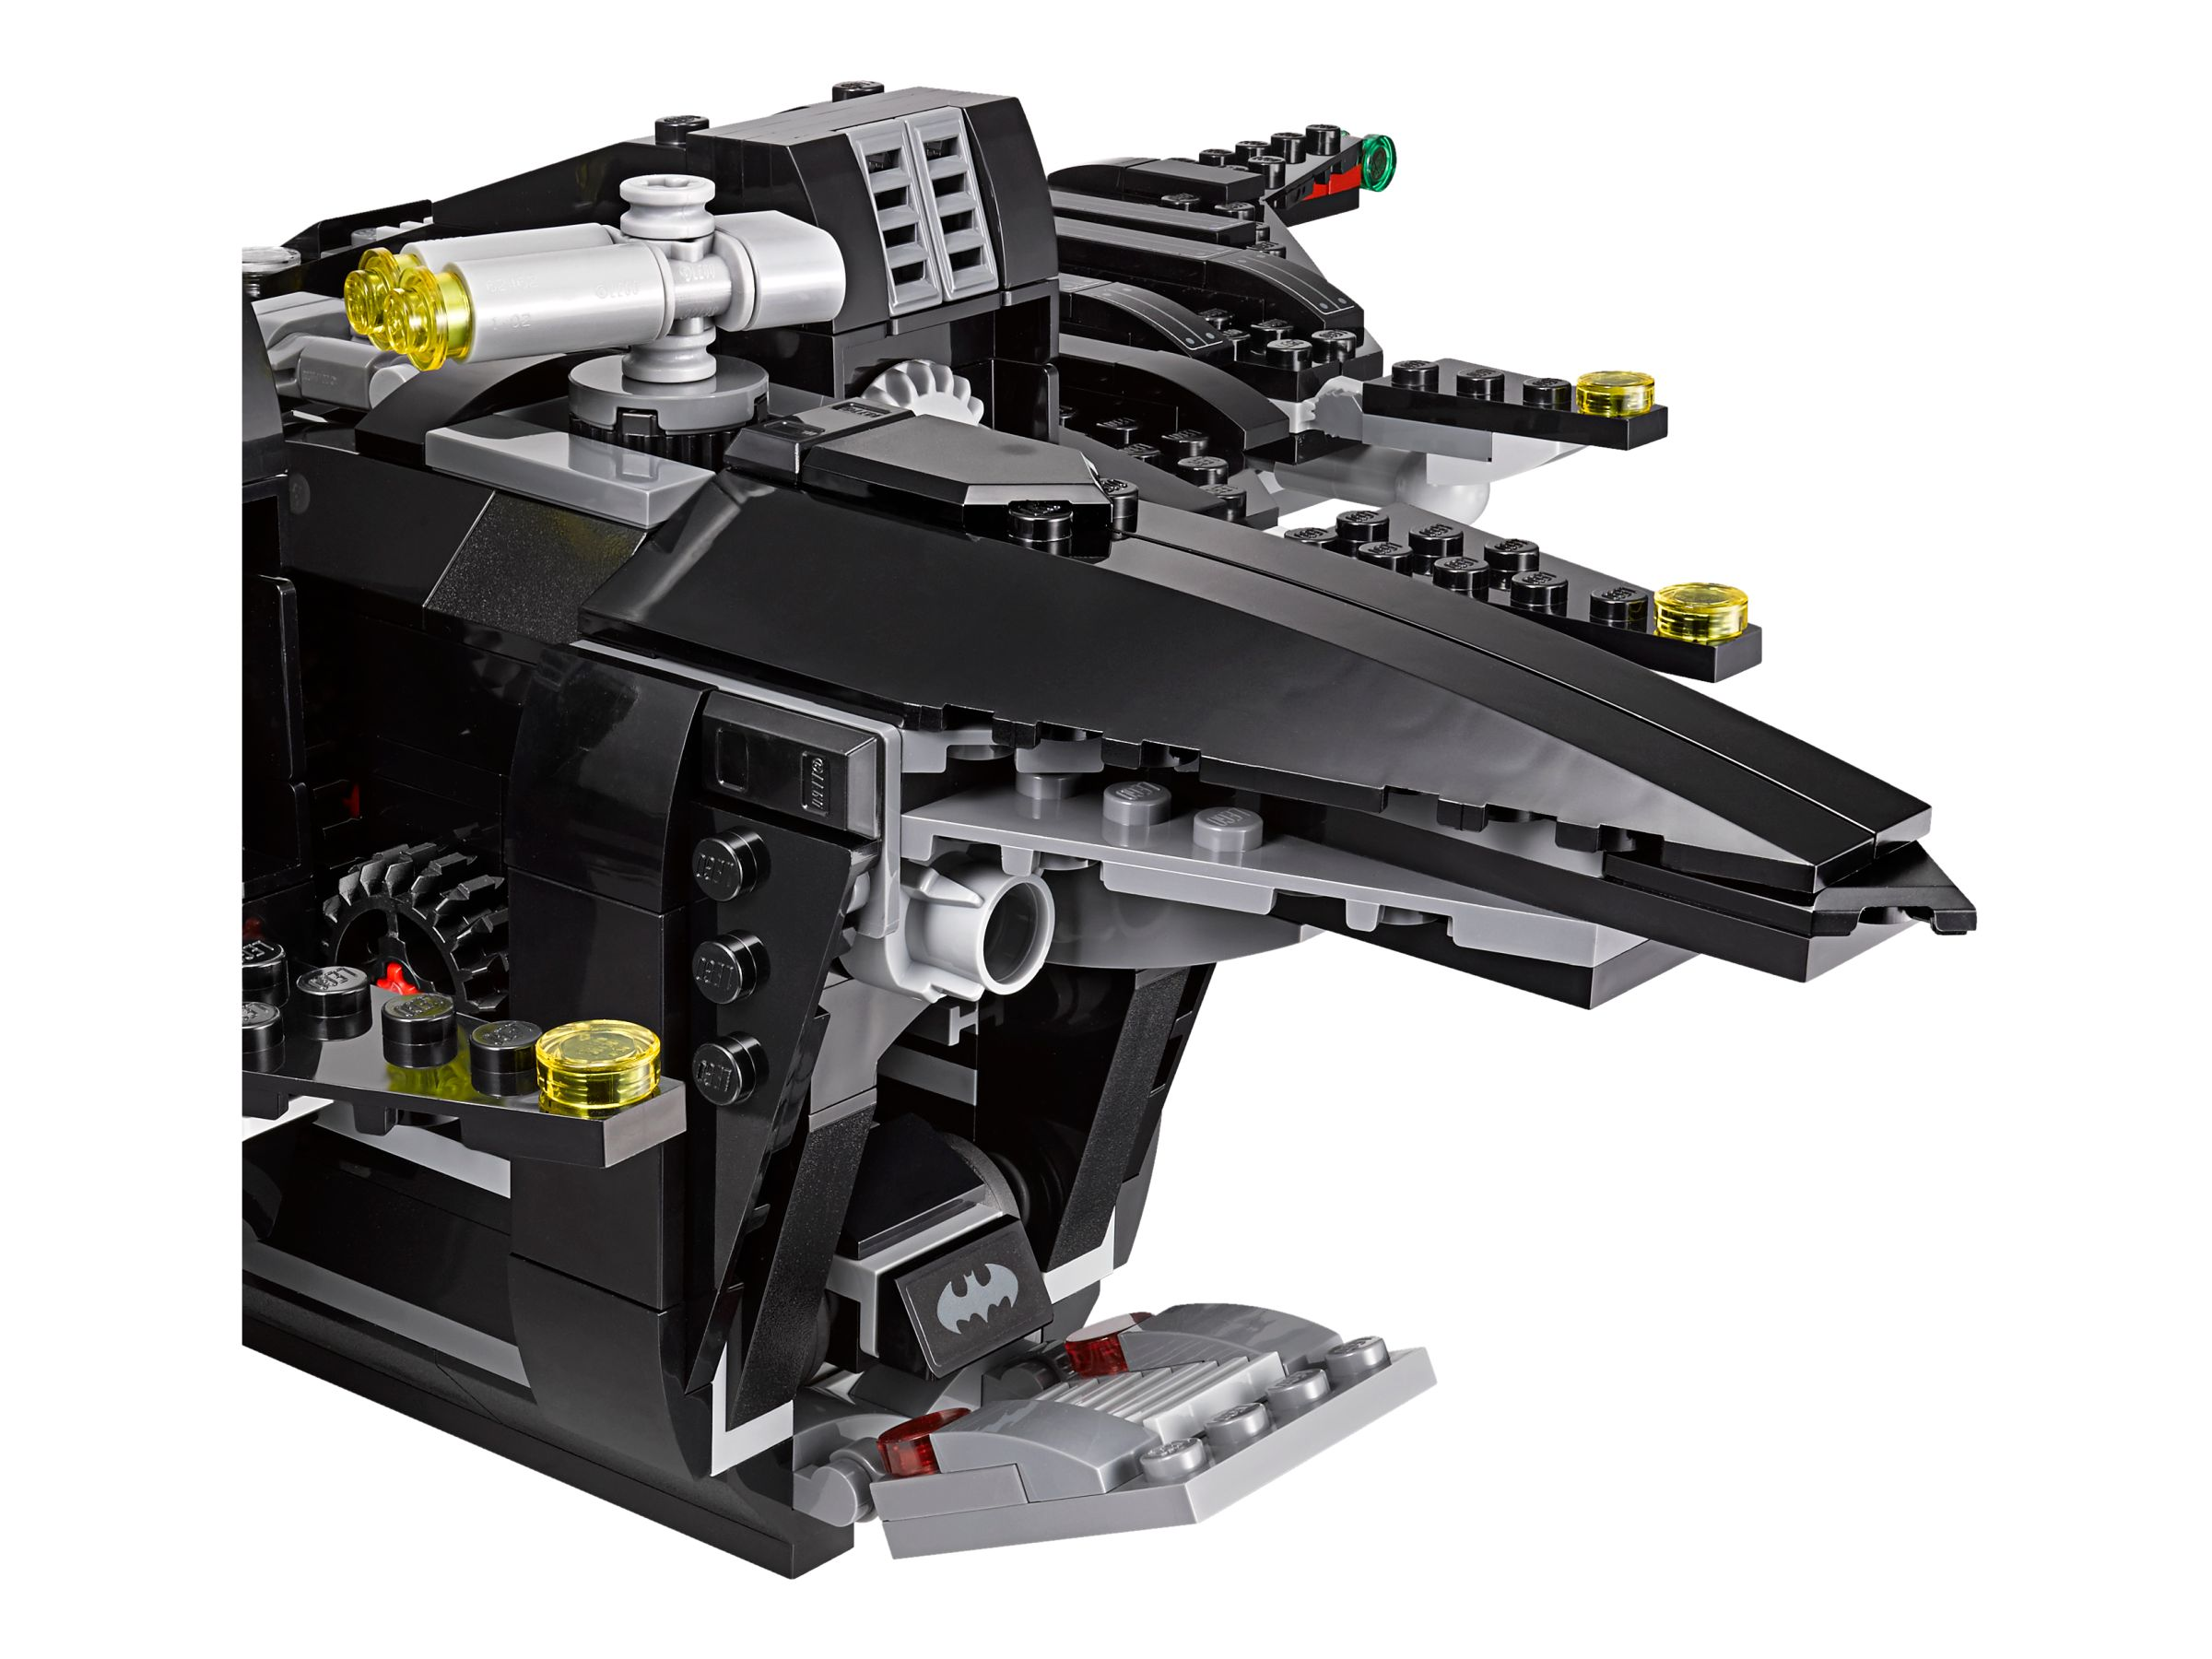 LEGO The LEGO Batman Movie 70916 Batwing LEGO_70916_alt3.jpg